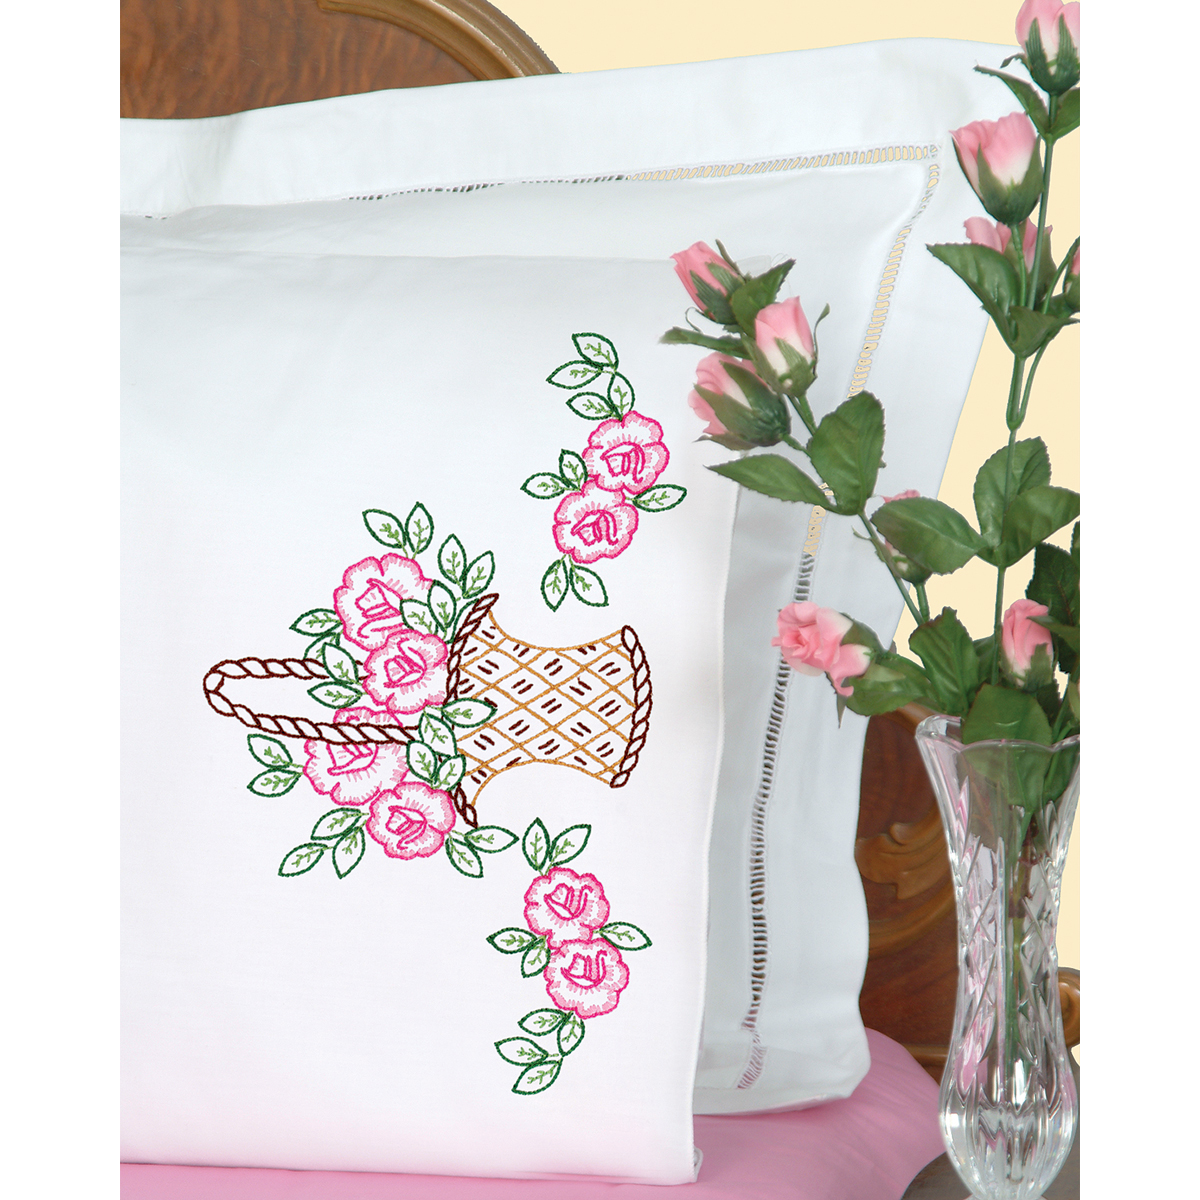 Jack Dempsey Stamped Pillowcases With White Perle Edge Basket Of Flowers